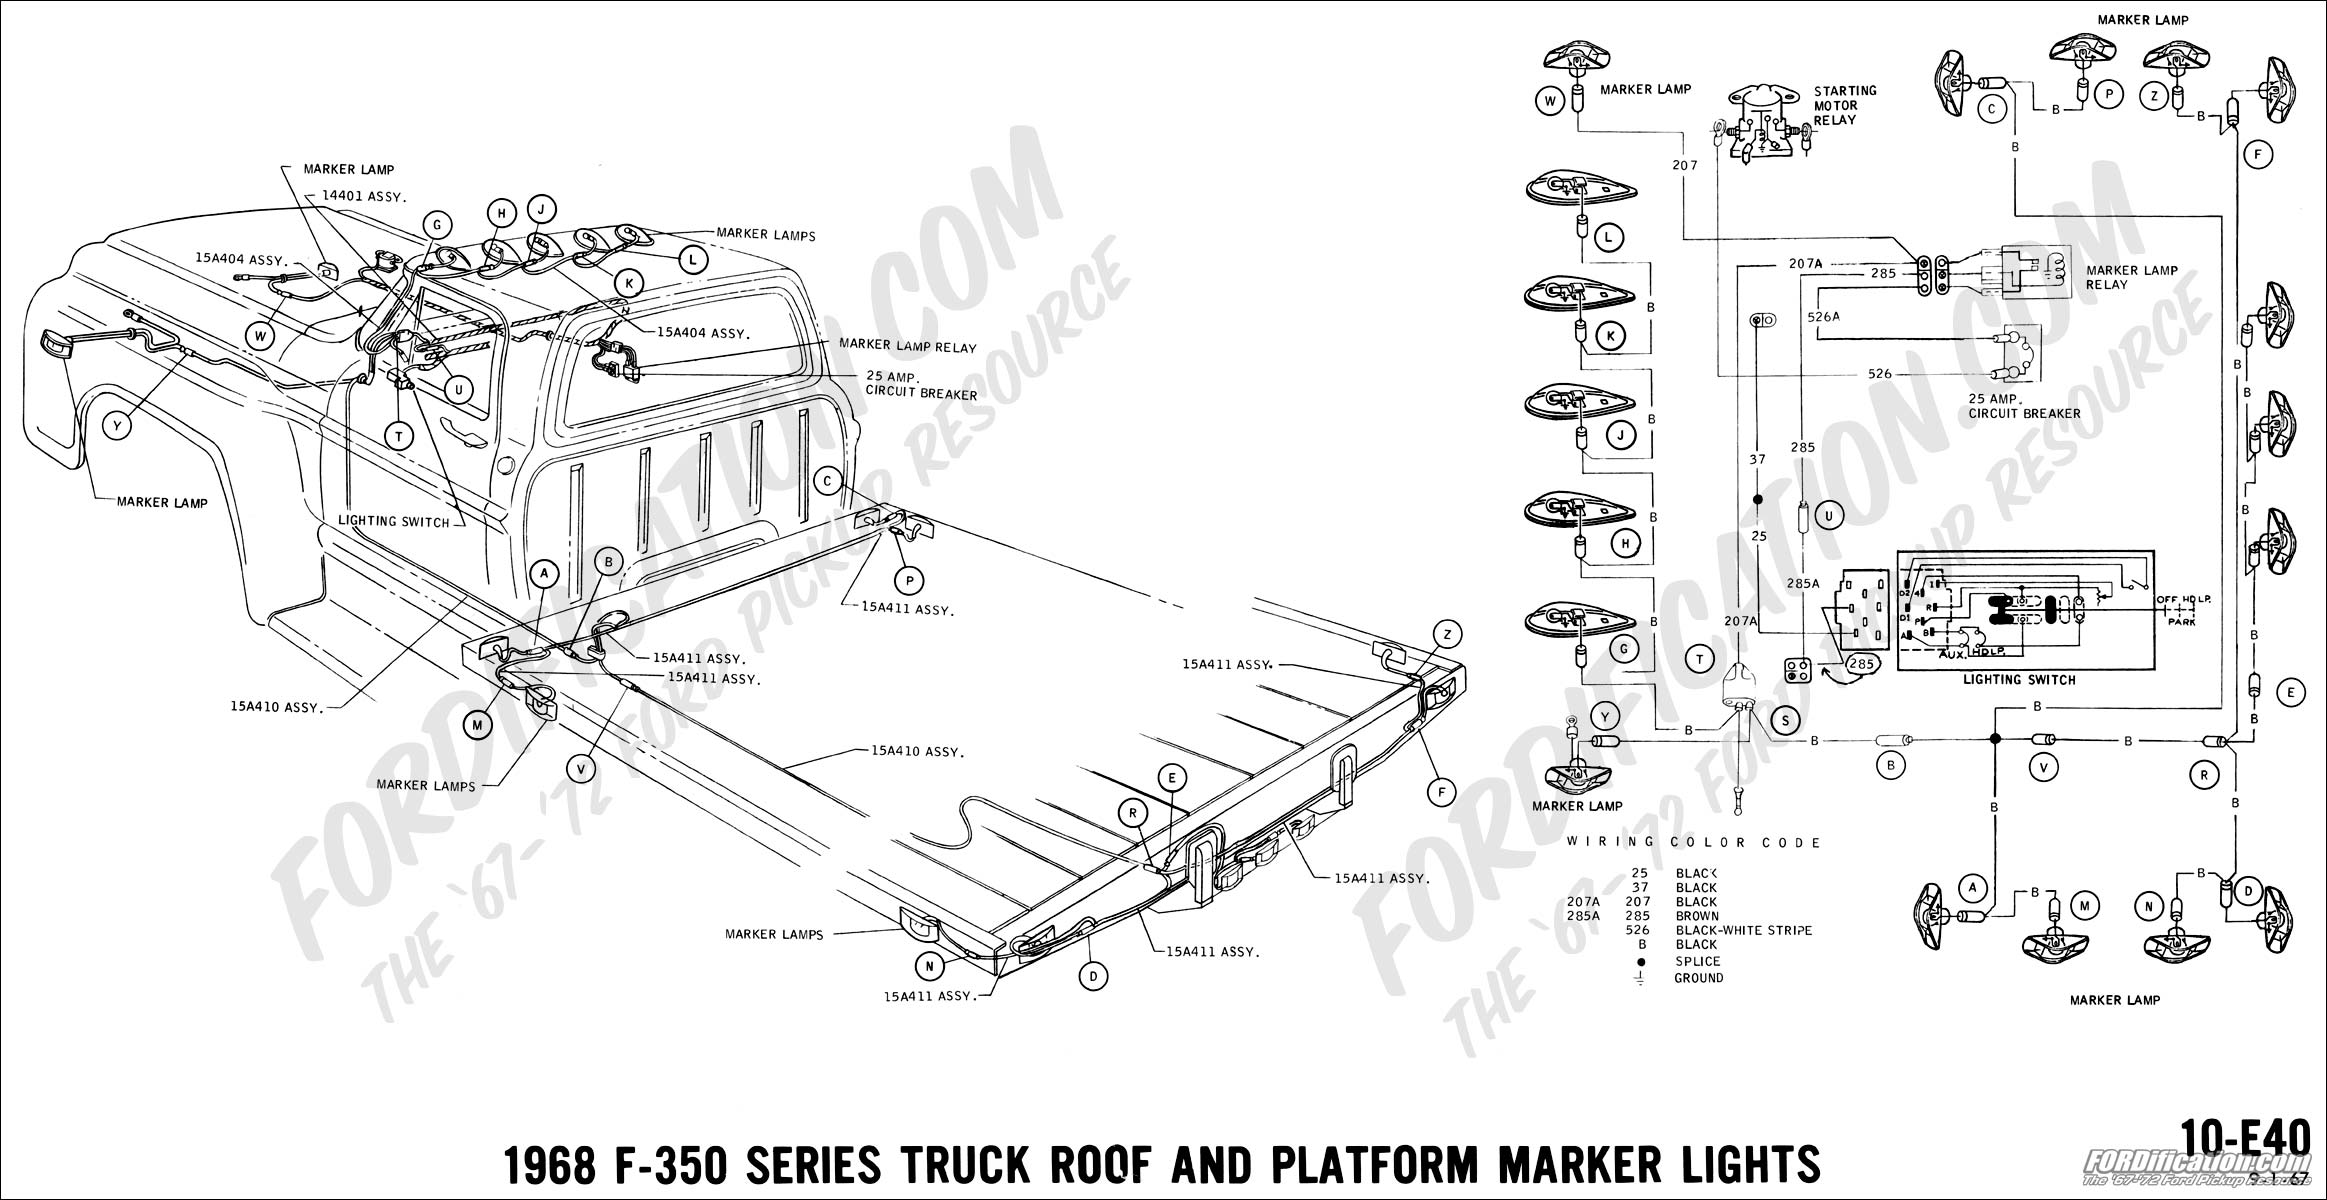 ford 7 way trailer wiring harness diagram ford truck f250 trailer wiring harness diagram ford truck technical drawings and schematics section h #7